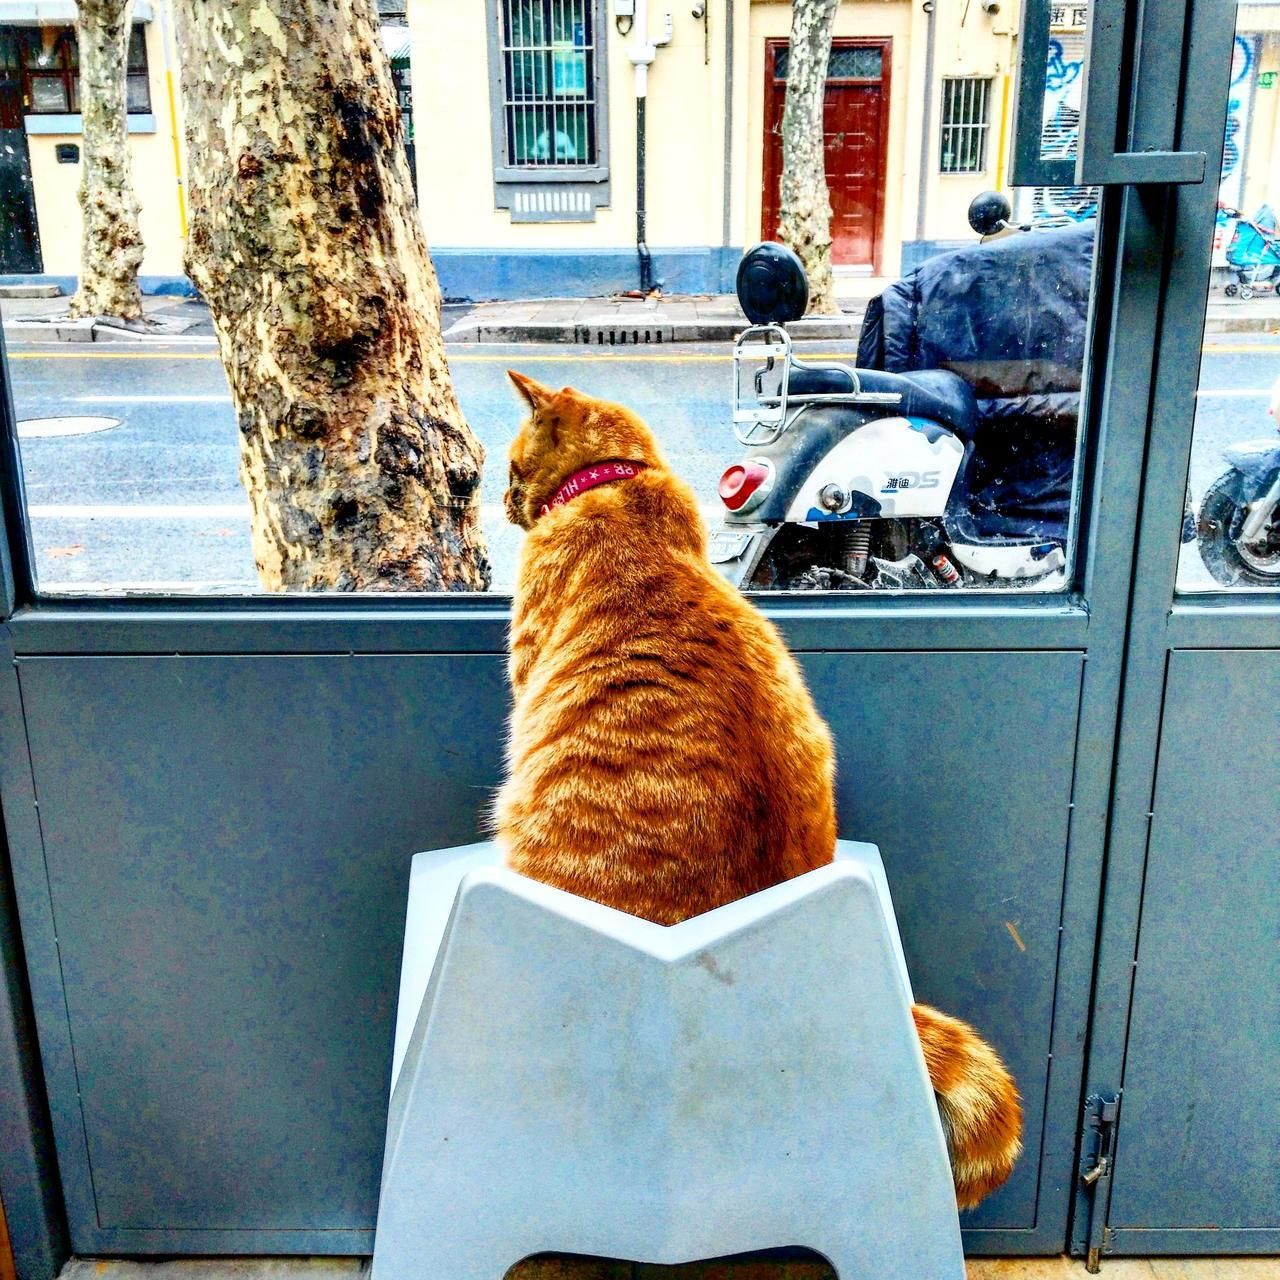 They Move A Chair To The Window For This Cafe Cat To Watch The World Go By By Hadherses Cats Kitten Catsonweb Cute A Cats And Kittens Sleepy Animals Cat Lounge